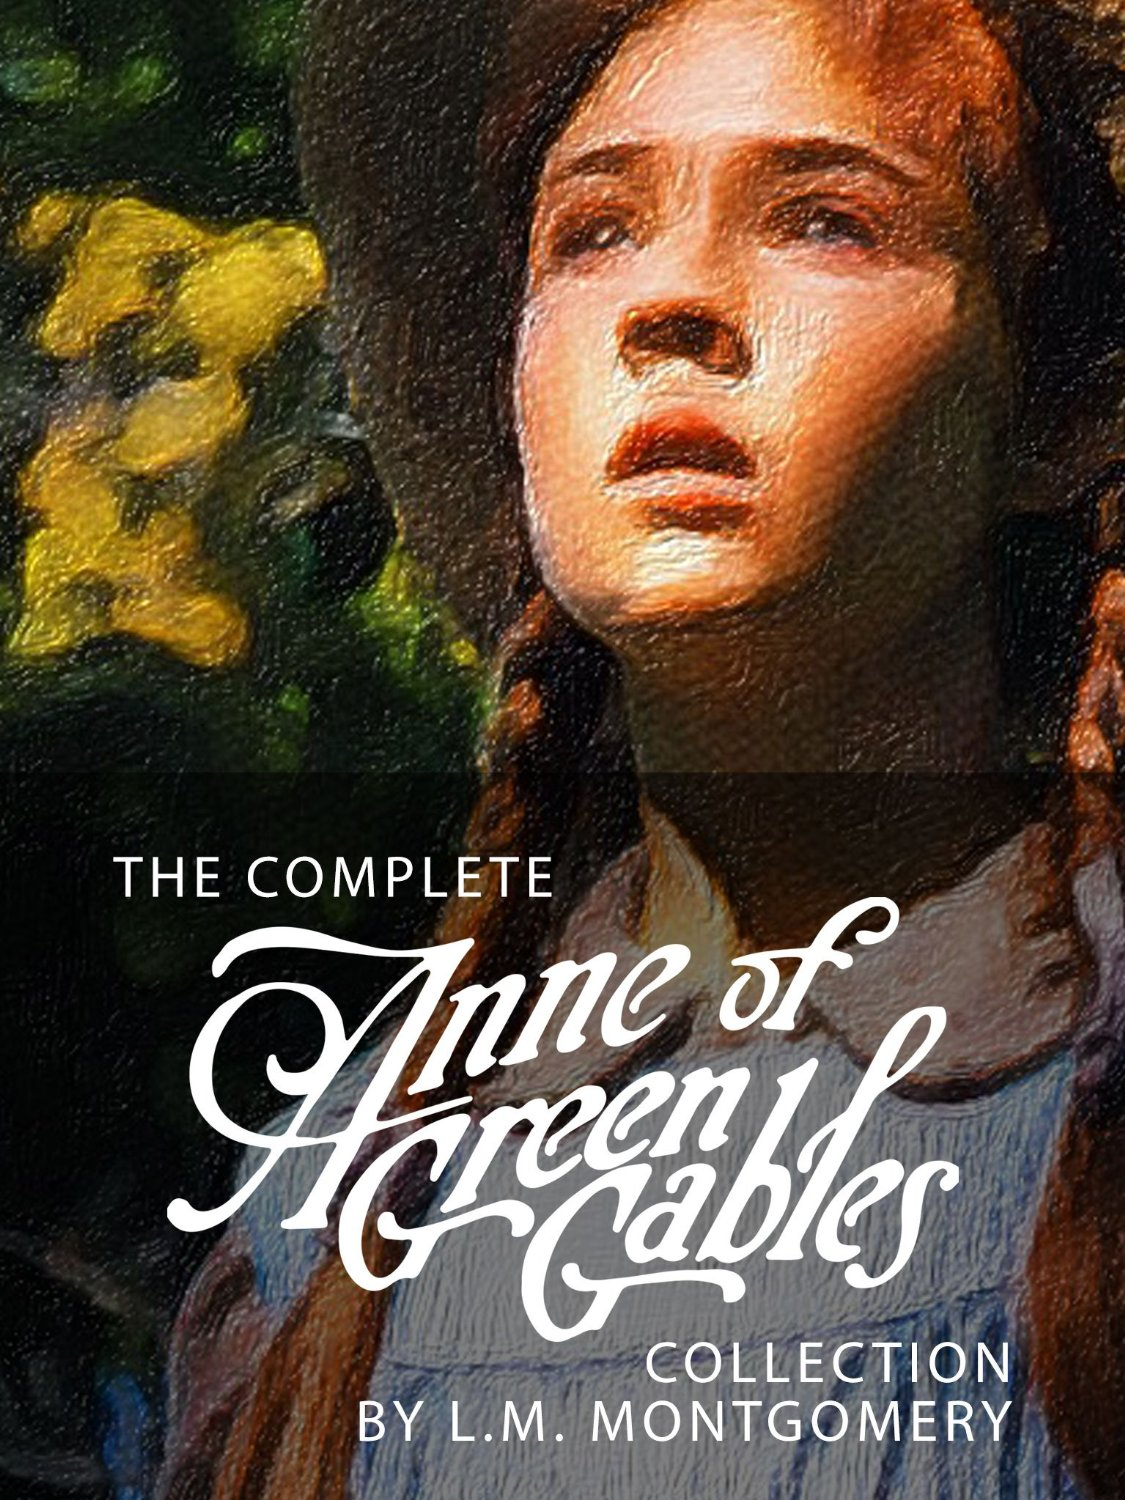 The Complete Anne of Green Gables Collection: 10 Classic Books, including Anne of Green Gables, Anne of Avonlea and 8 Others free download